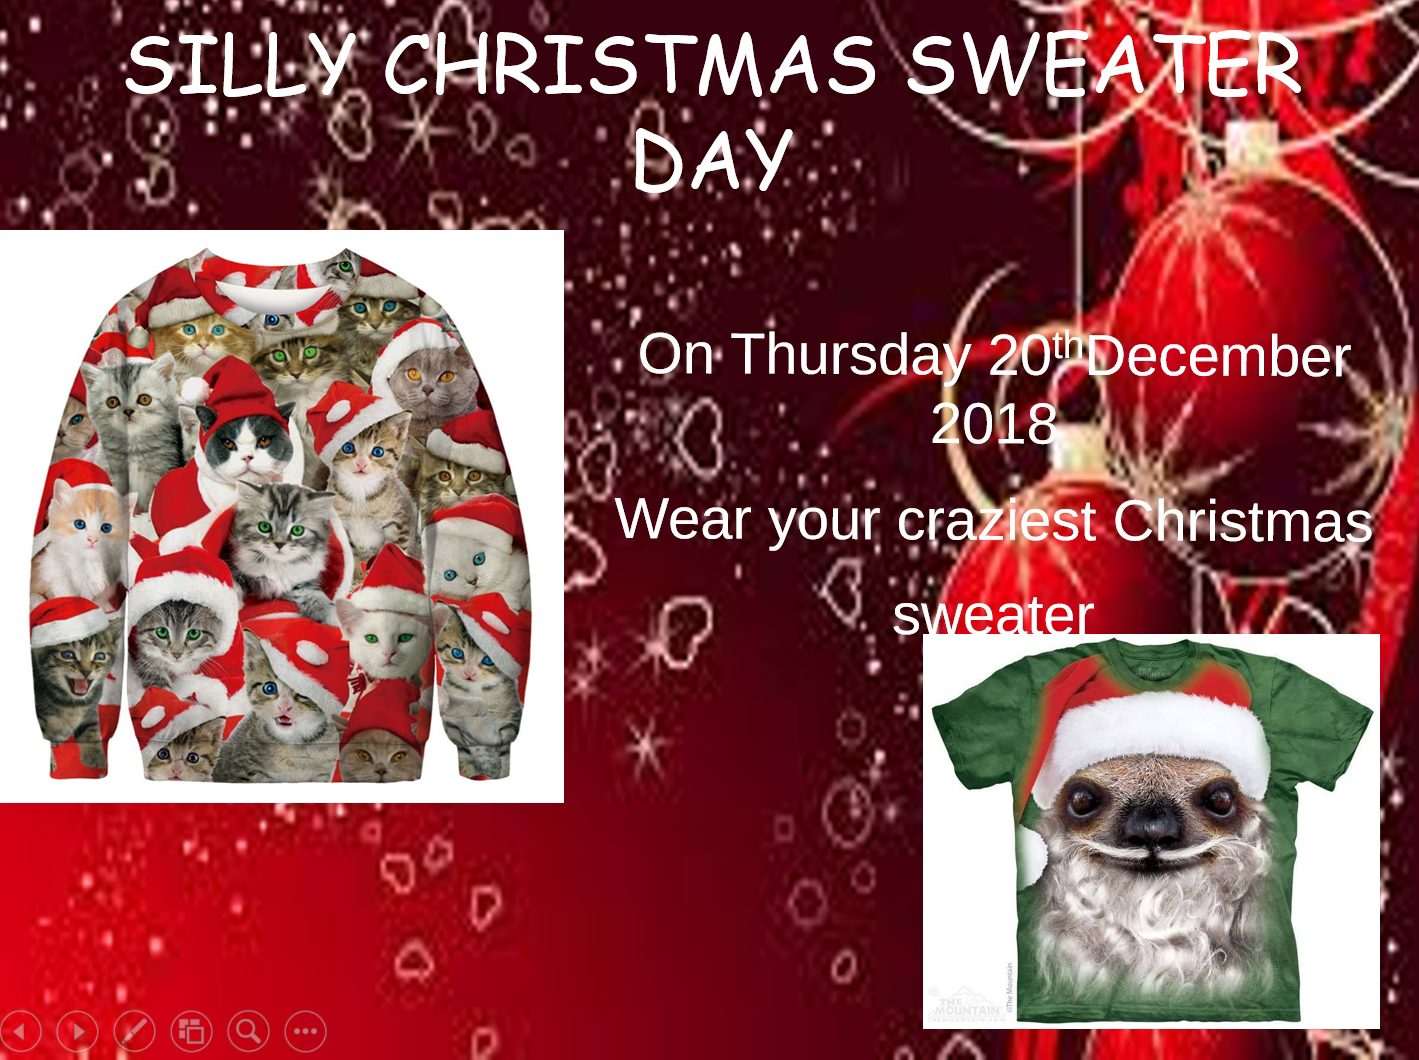 Silly Christmas Sweater Day